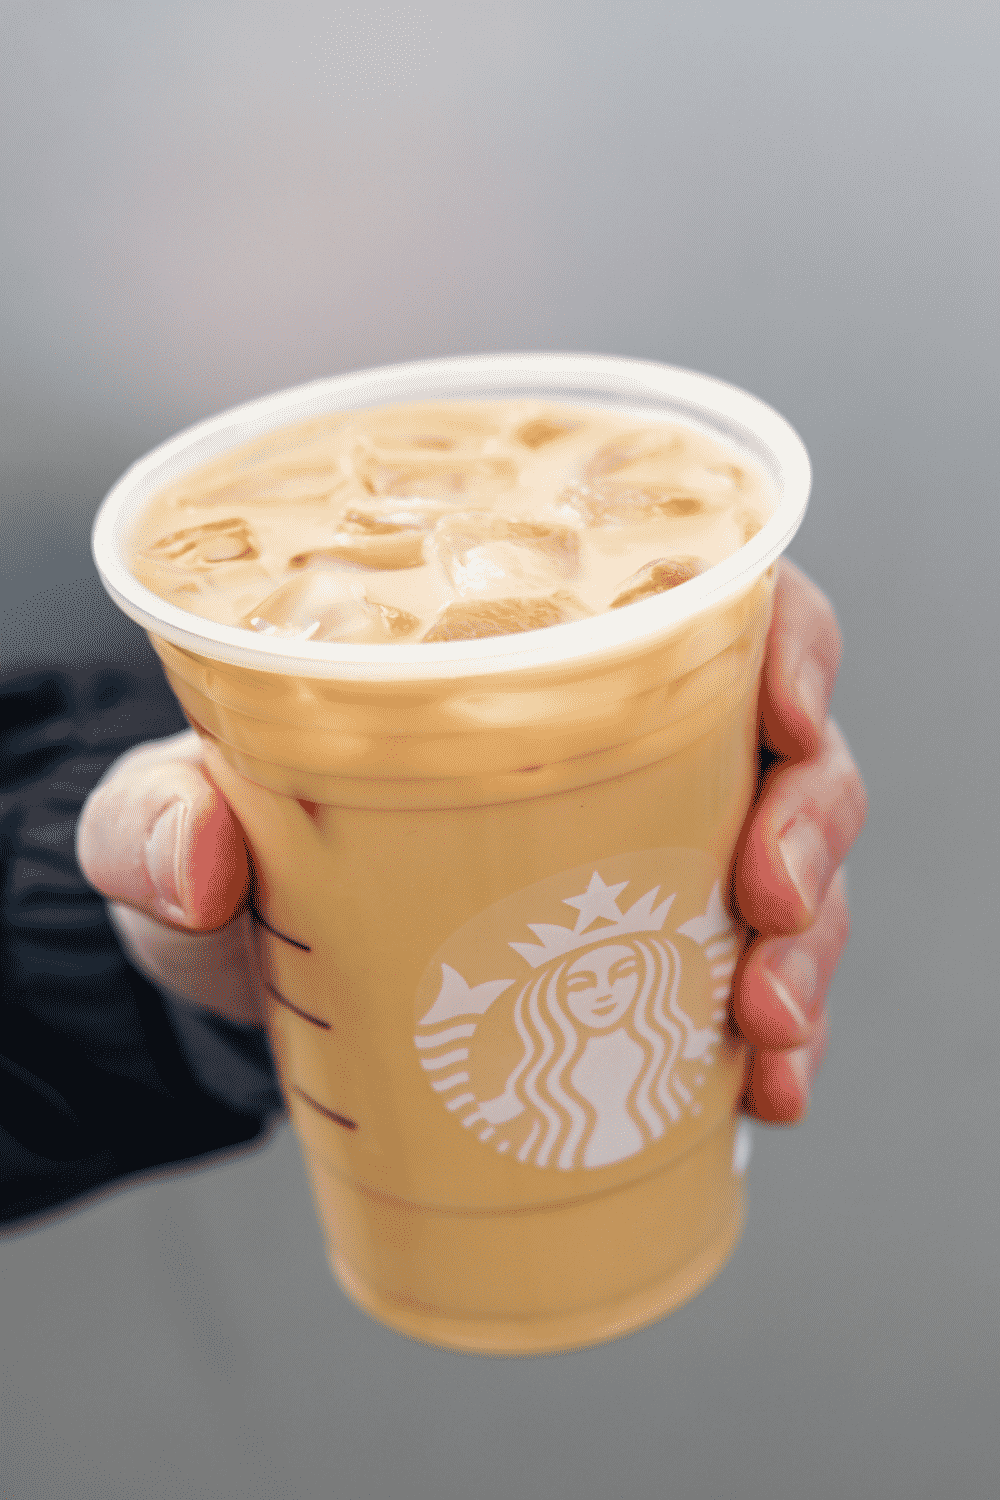 A hand holding a cup of Starbucks iced blonde vanilla latte.